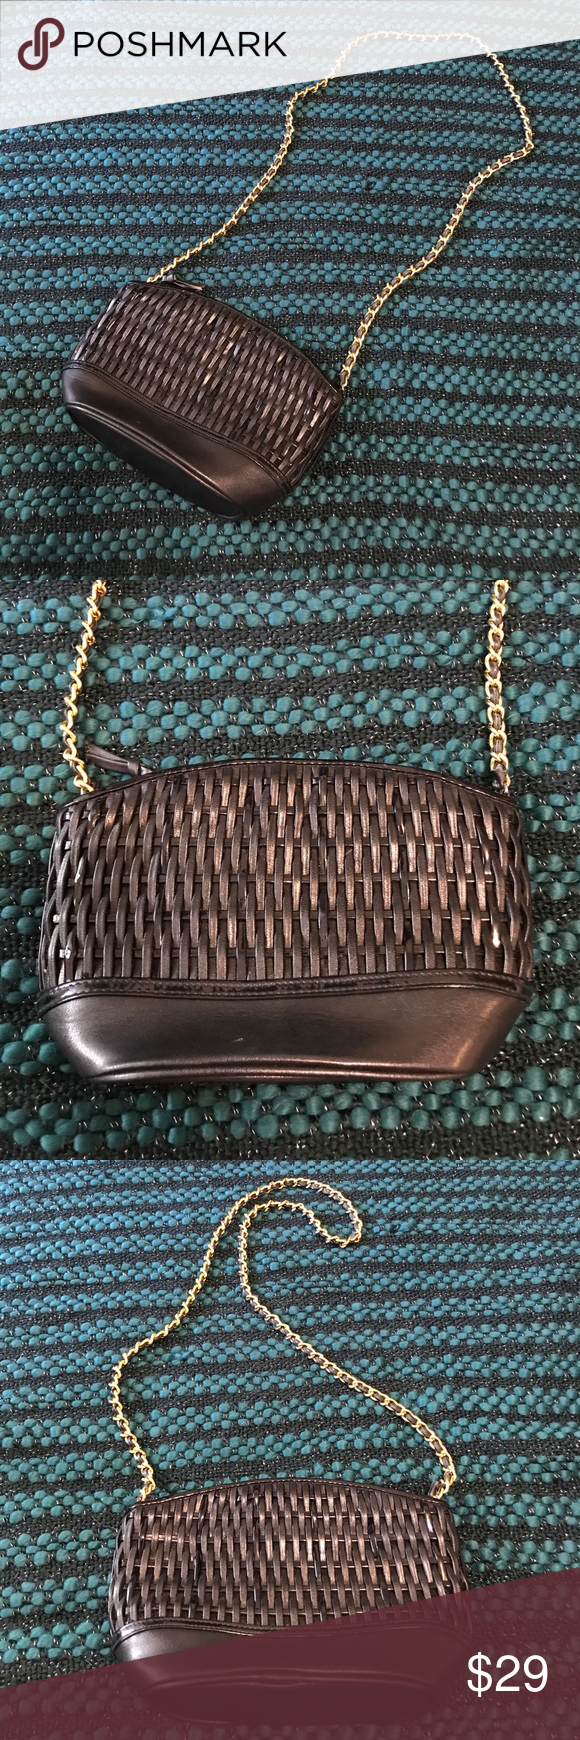 Vintage Feeling Small Shoulder Bag Black and Gold Black woven shoulder bag! So cute! It has a vintage feel but doesn't have Tags so I am not sure if t is actually vintage. It's in really good condition! I love the gold chain wrapped with leather! Reasonable offers accepted! Bundle for a private discount! Unbranded Bags Shoulder Bags